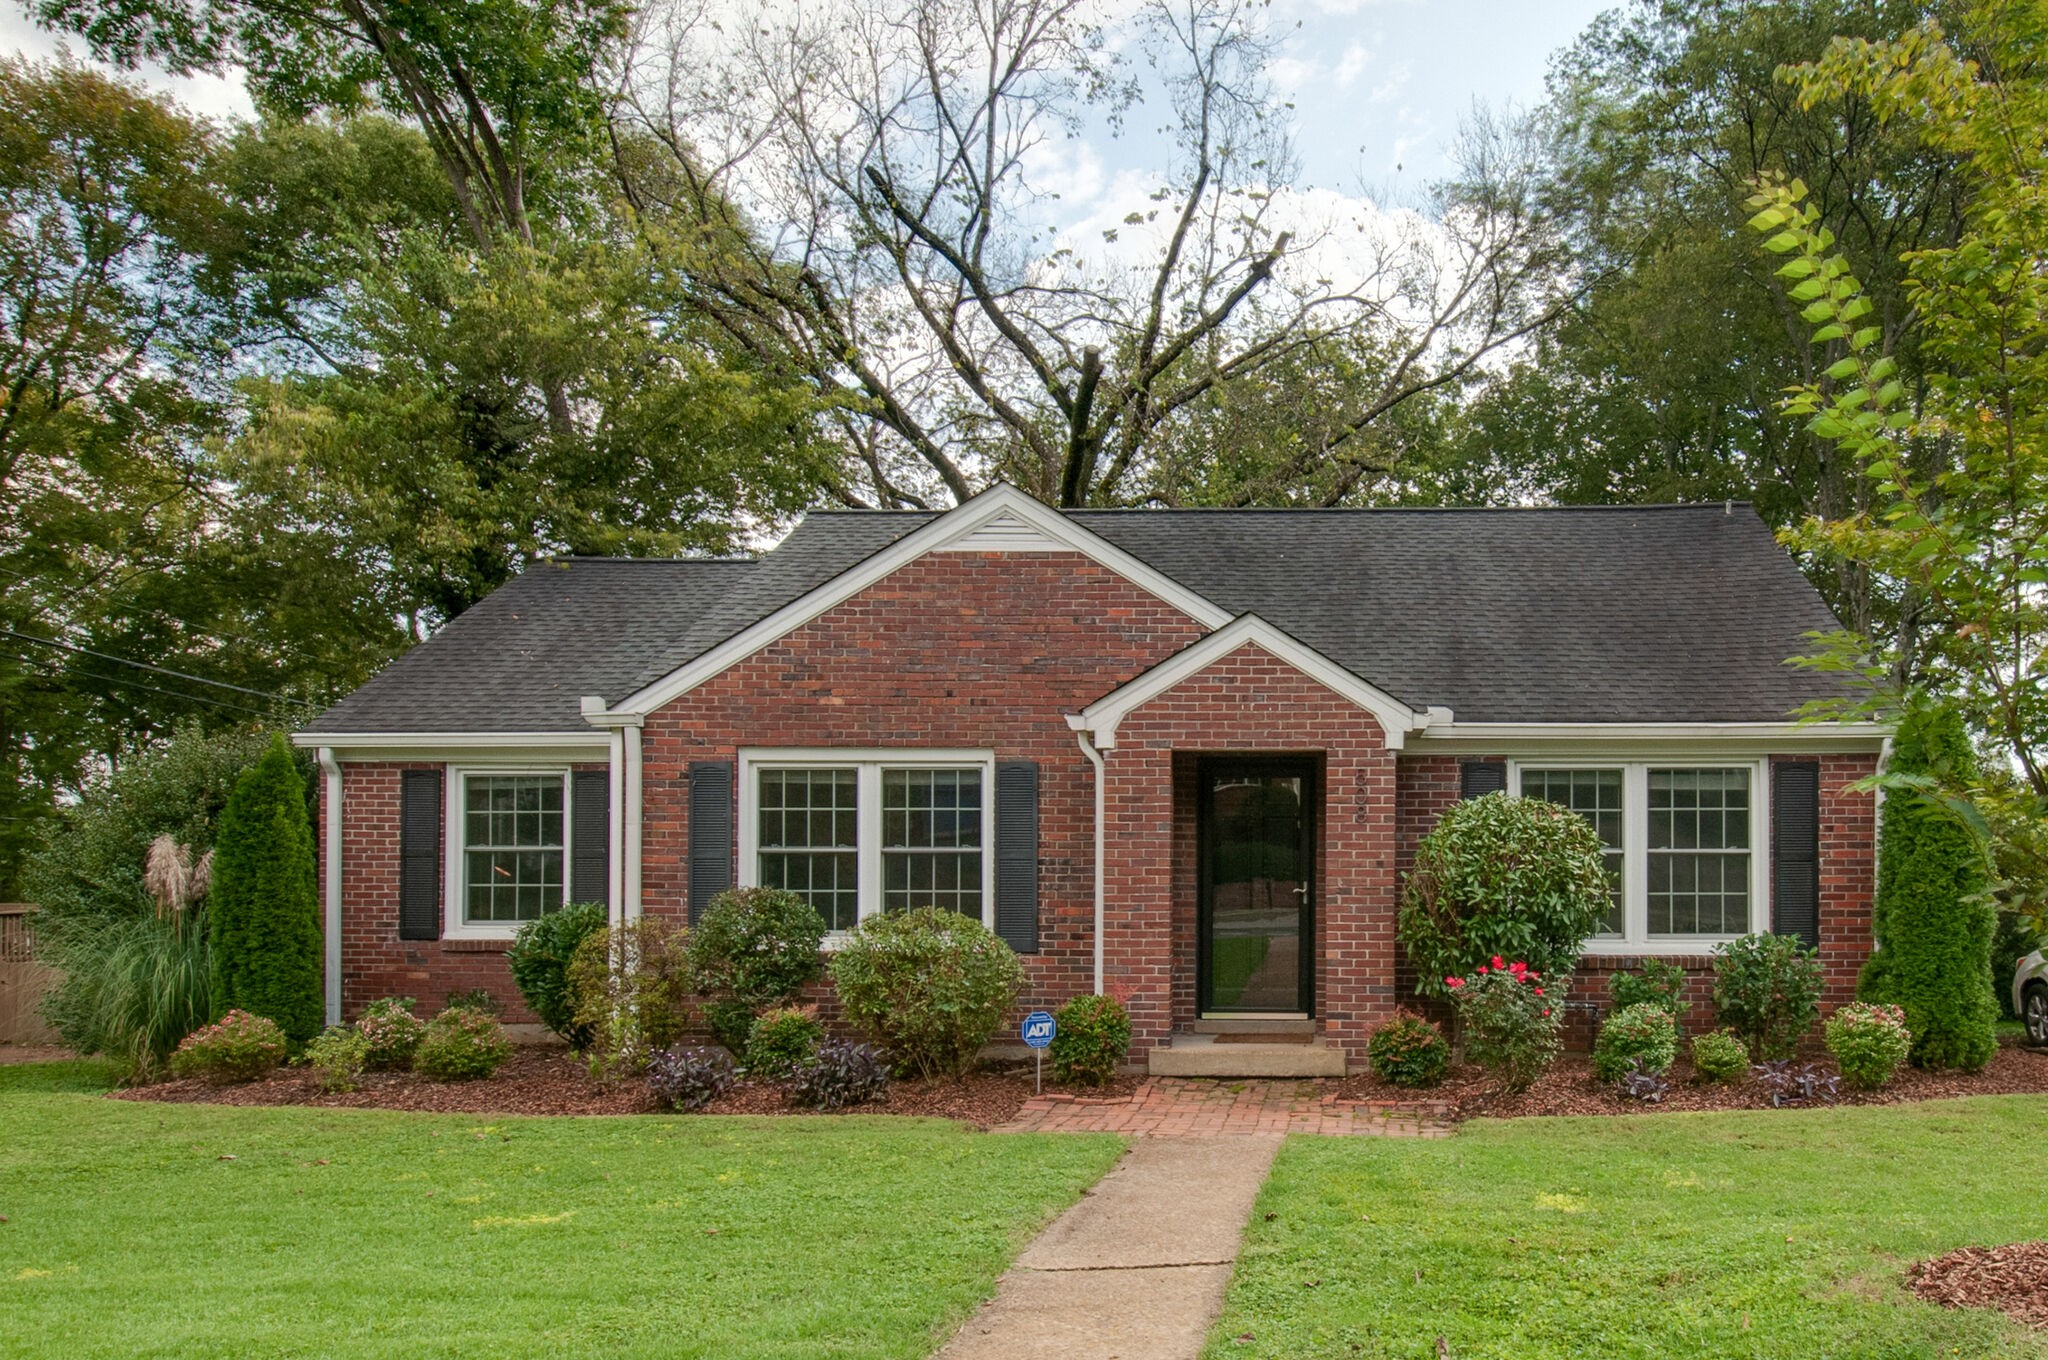 Charming home in the highly desirable Brookside Courts neighborhood. All brick with 3 bedrooms and 2 baths, spacious laundry room, open living areas and a fully fenced in back yard. Enjoy easy access to Trader Joes, Charlotte dining options, The Richland Greenway and I-40.